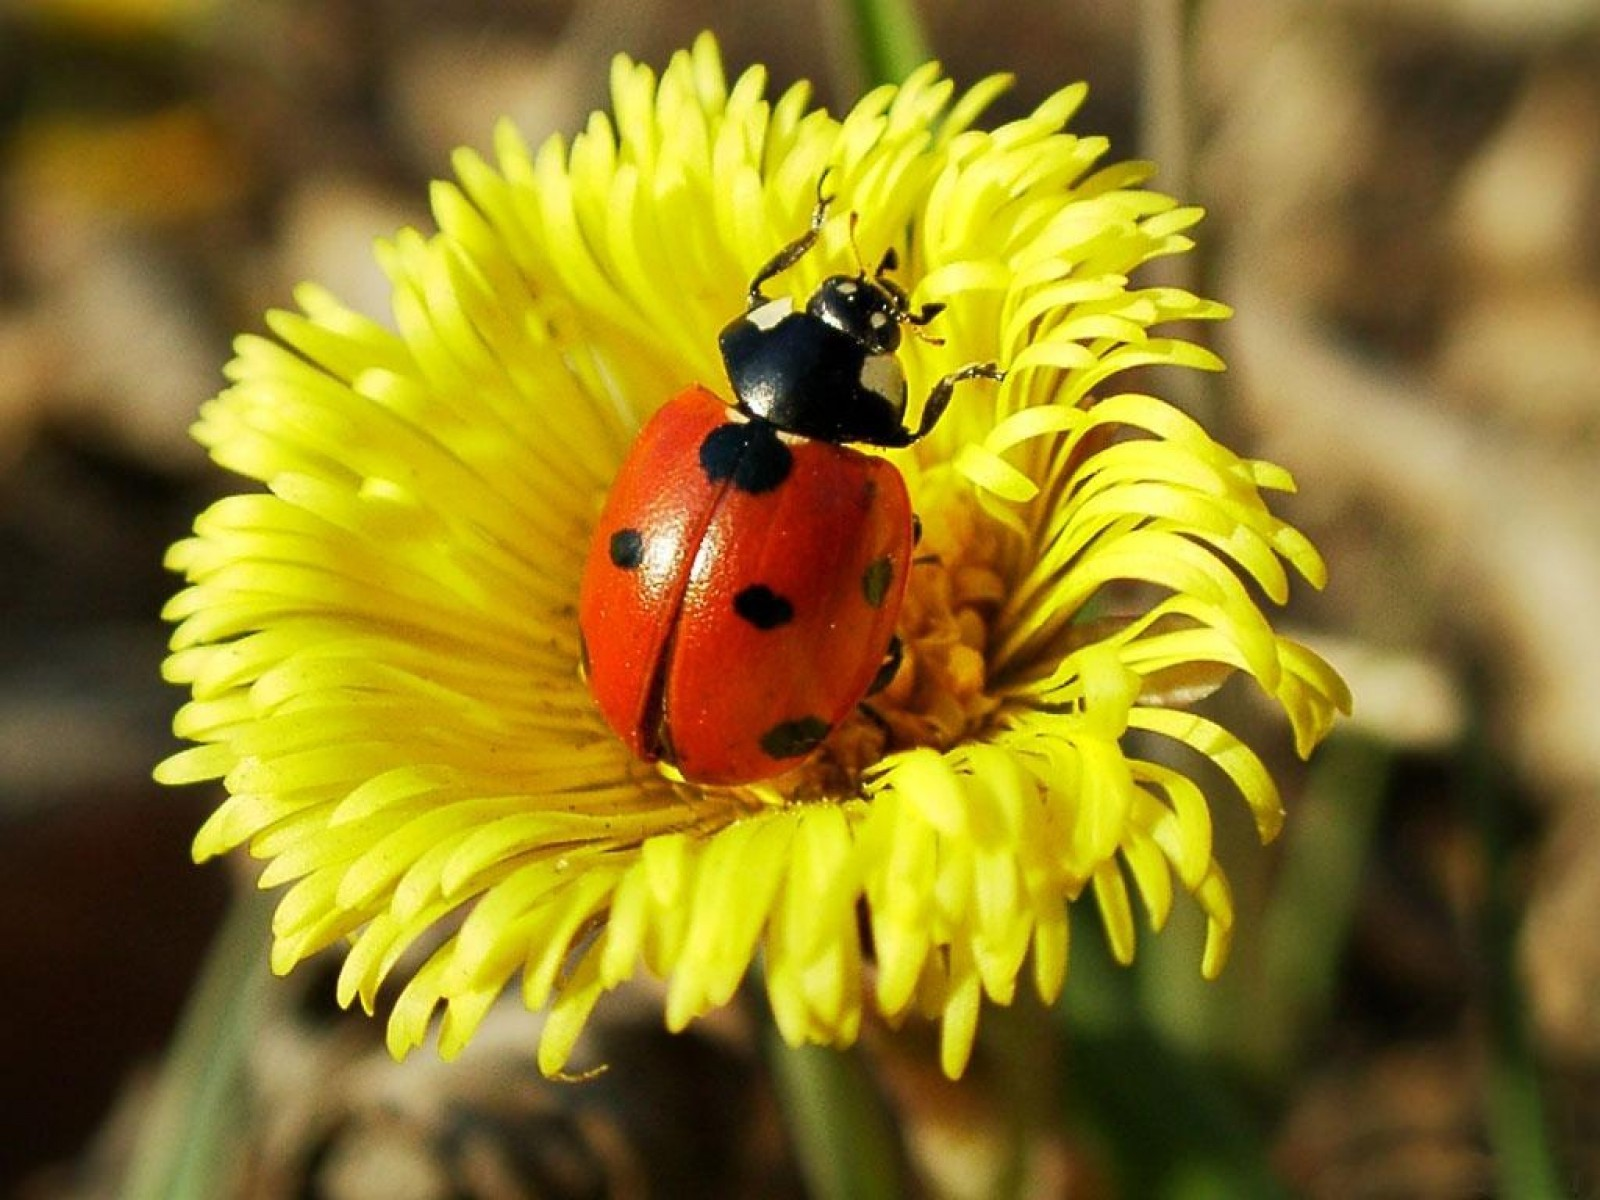 30582 download wallpaper Insects, Ladybugs screensavers and pictures for free